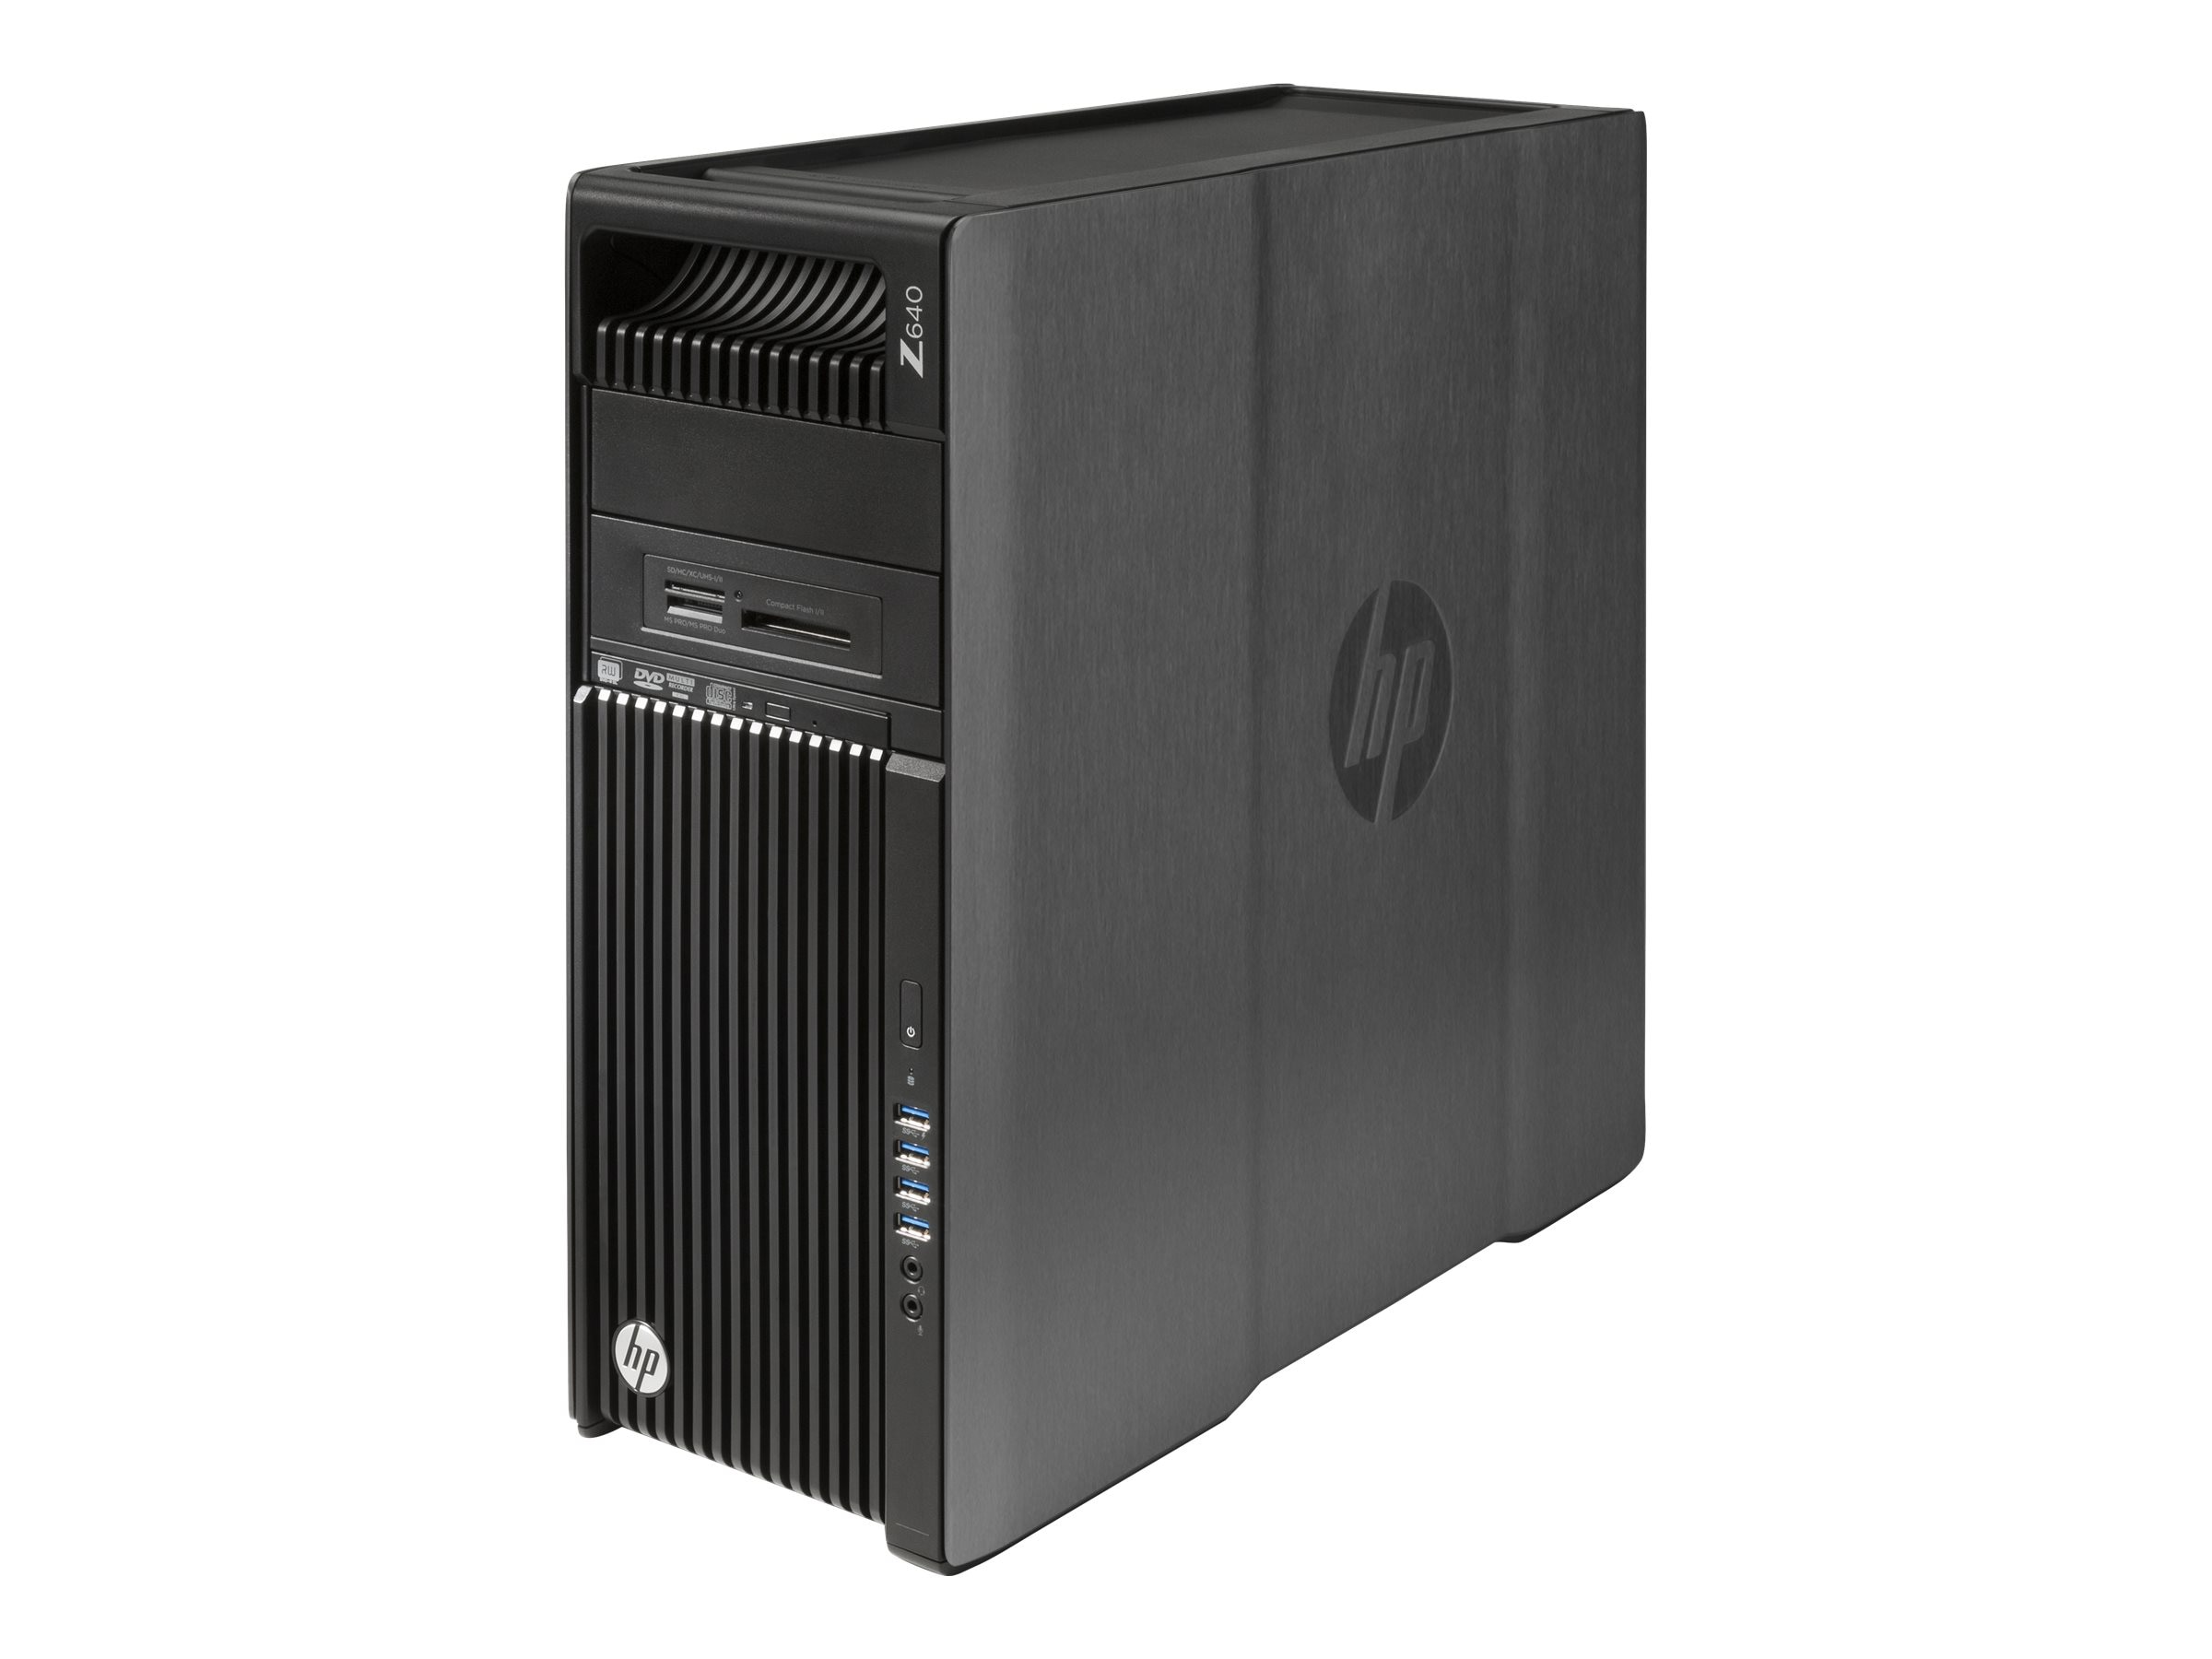 HP Smart Buy Z640 2.4GHz Xeon Microsoft Windows 7 Professional 64-bit Edition   Windows 8.1 Pro, F1M60UT#ABA, 17964279, Workstations